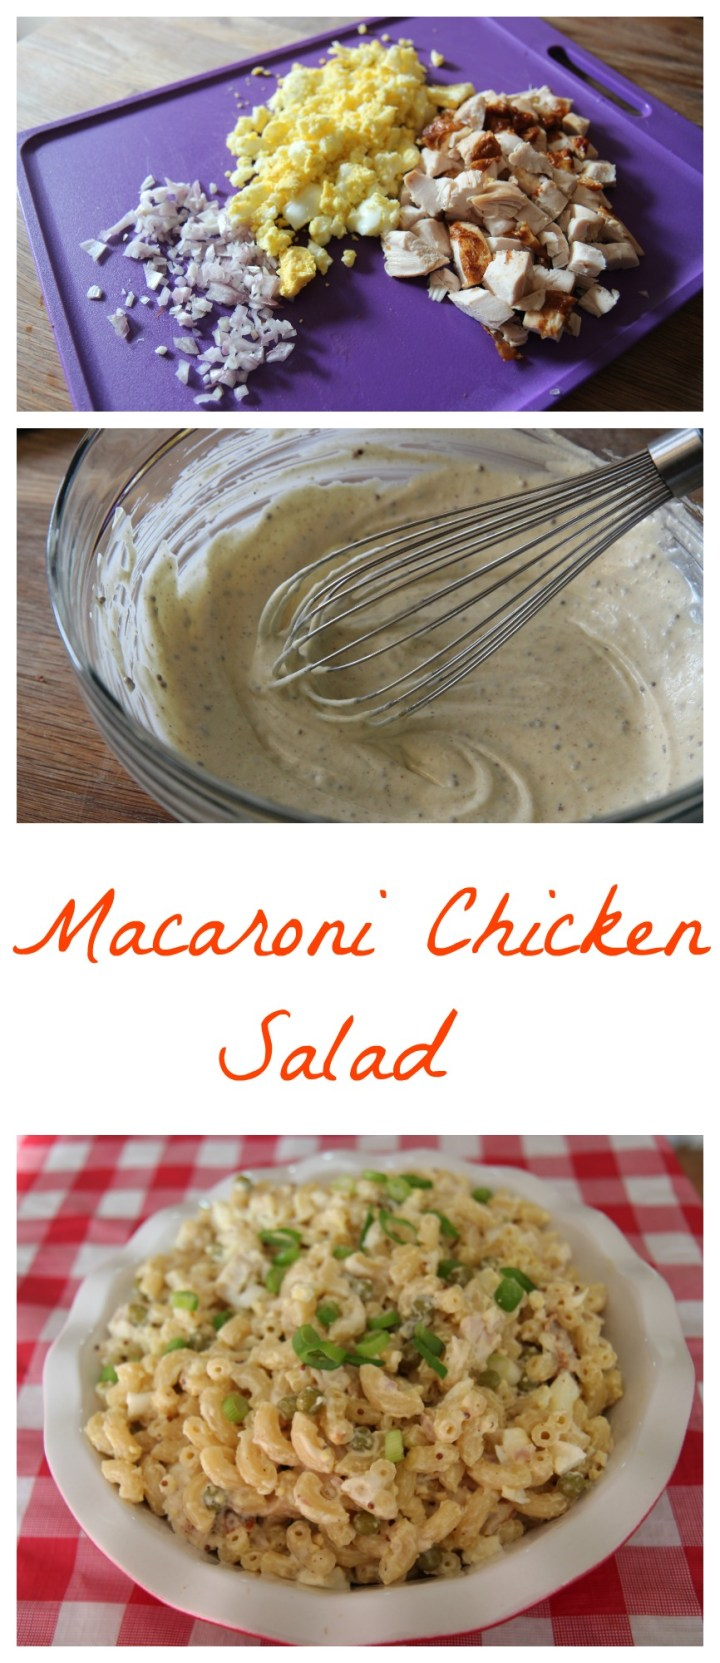 Creamy Macaroni Chicken Salad from Cookedbyjulie.com